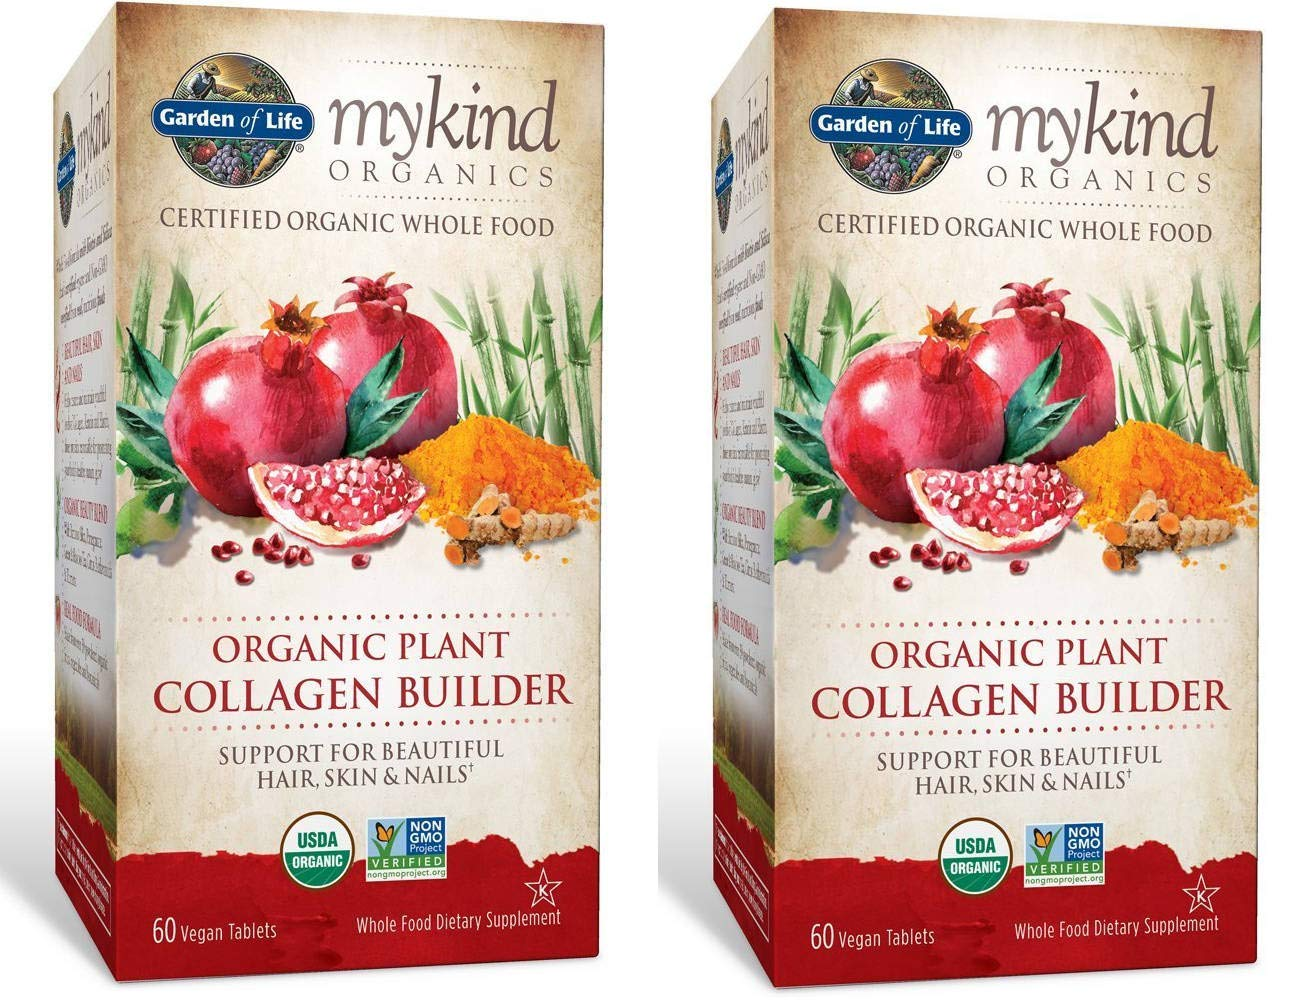 MyKind Organics Certified Organic Whole Food Plant Collagen Builder for Beautiful Hair, Skin and Nails (60 Vegan Tablets) Pack of 2